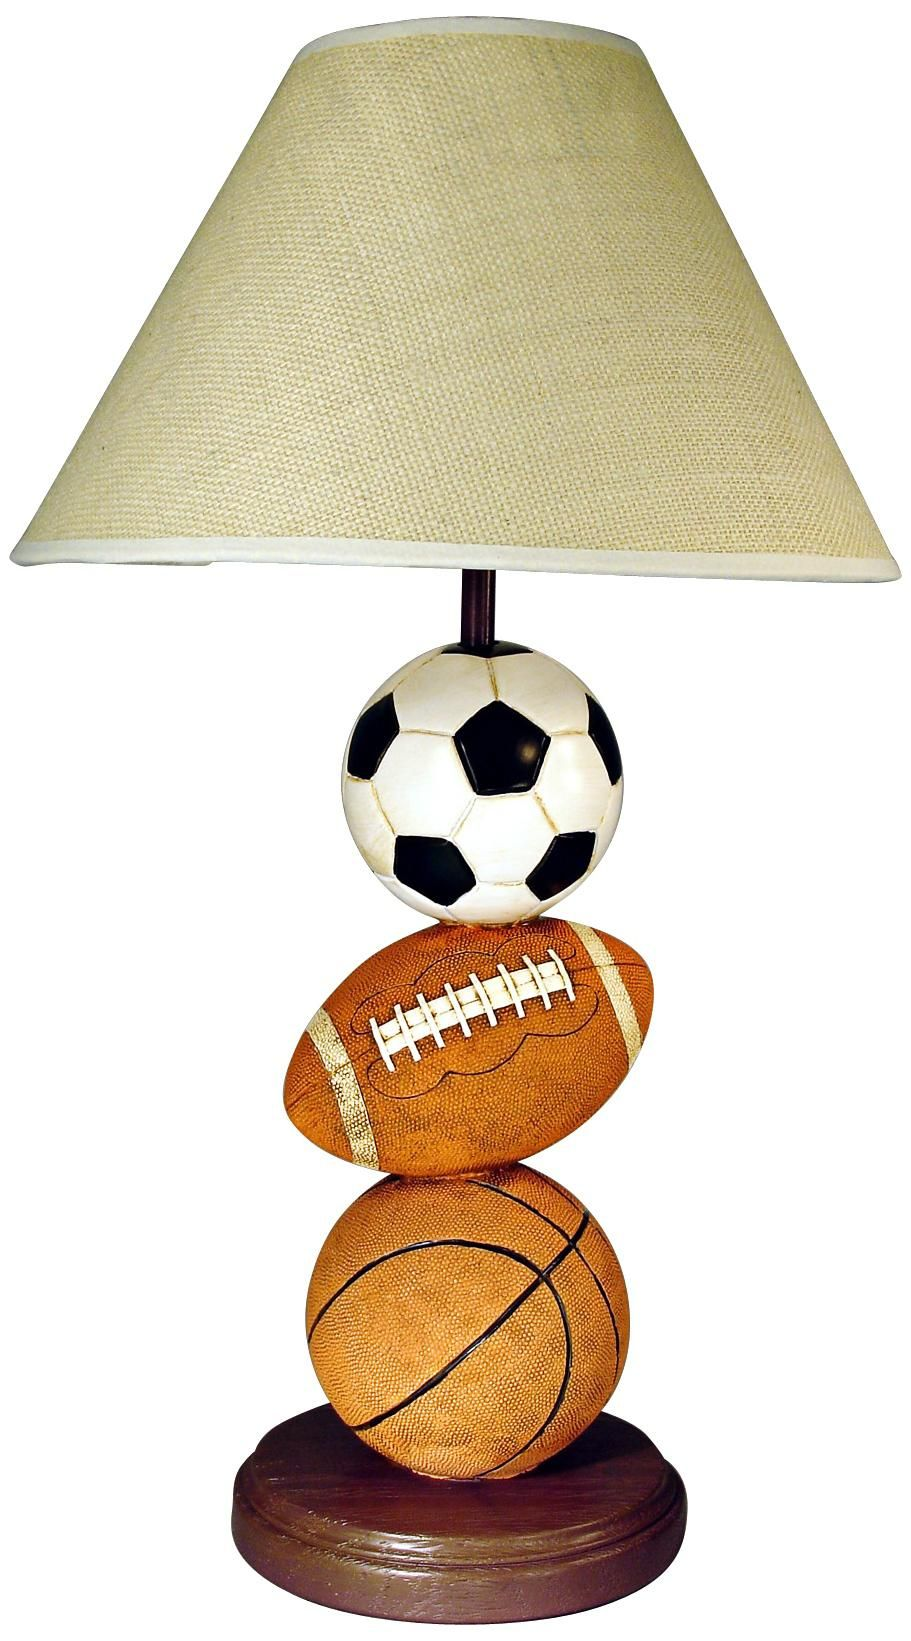 3 Ball Sports Themed 22 25 High Table Lamp With Shade Baby